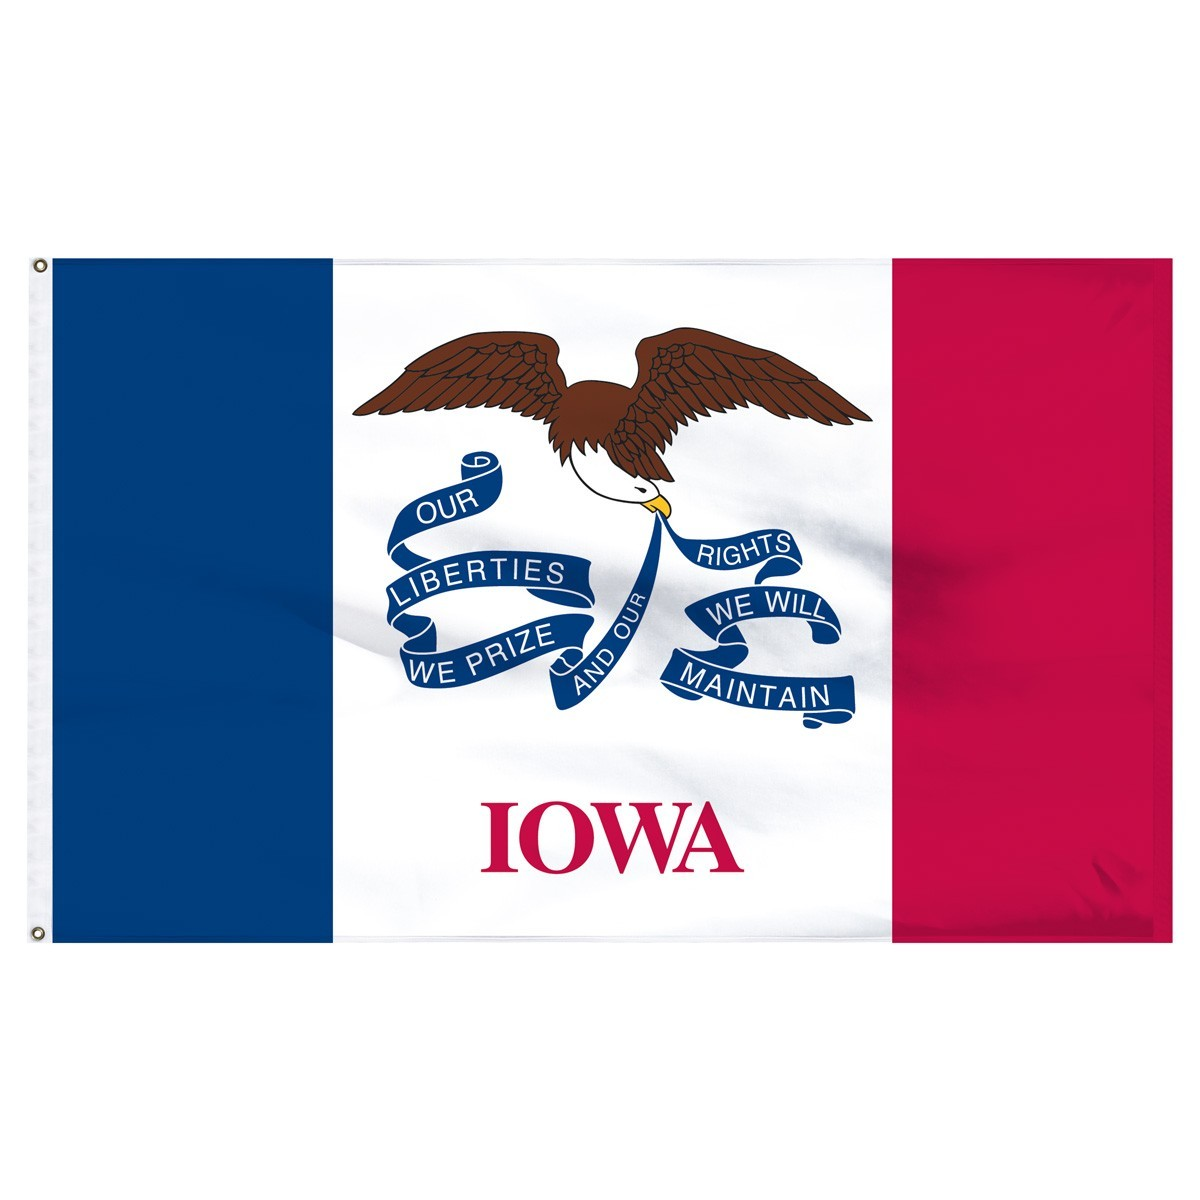 Iowa State Flags For Sale by 1-800 Flags